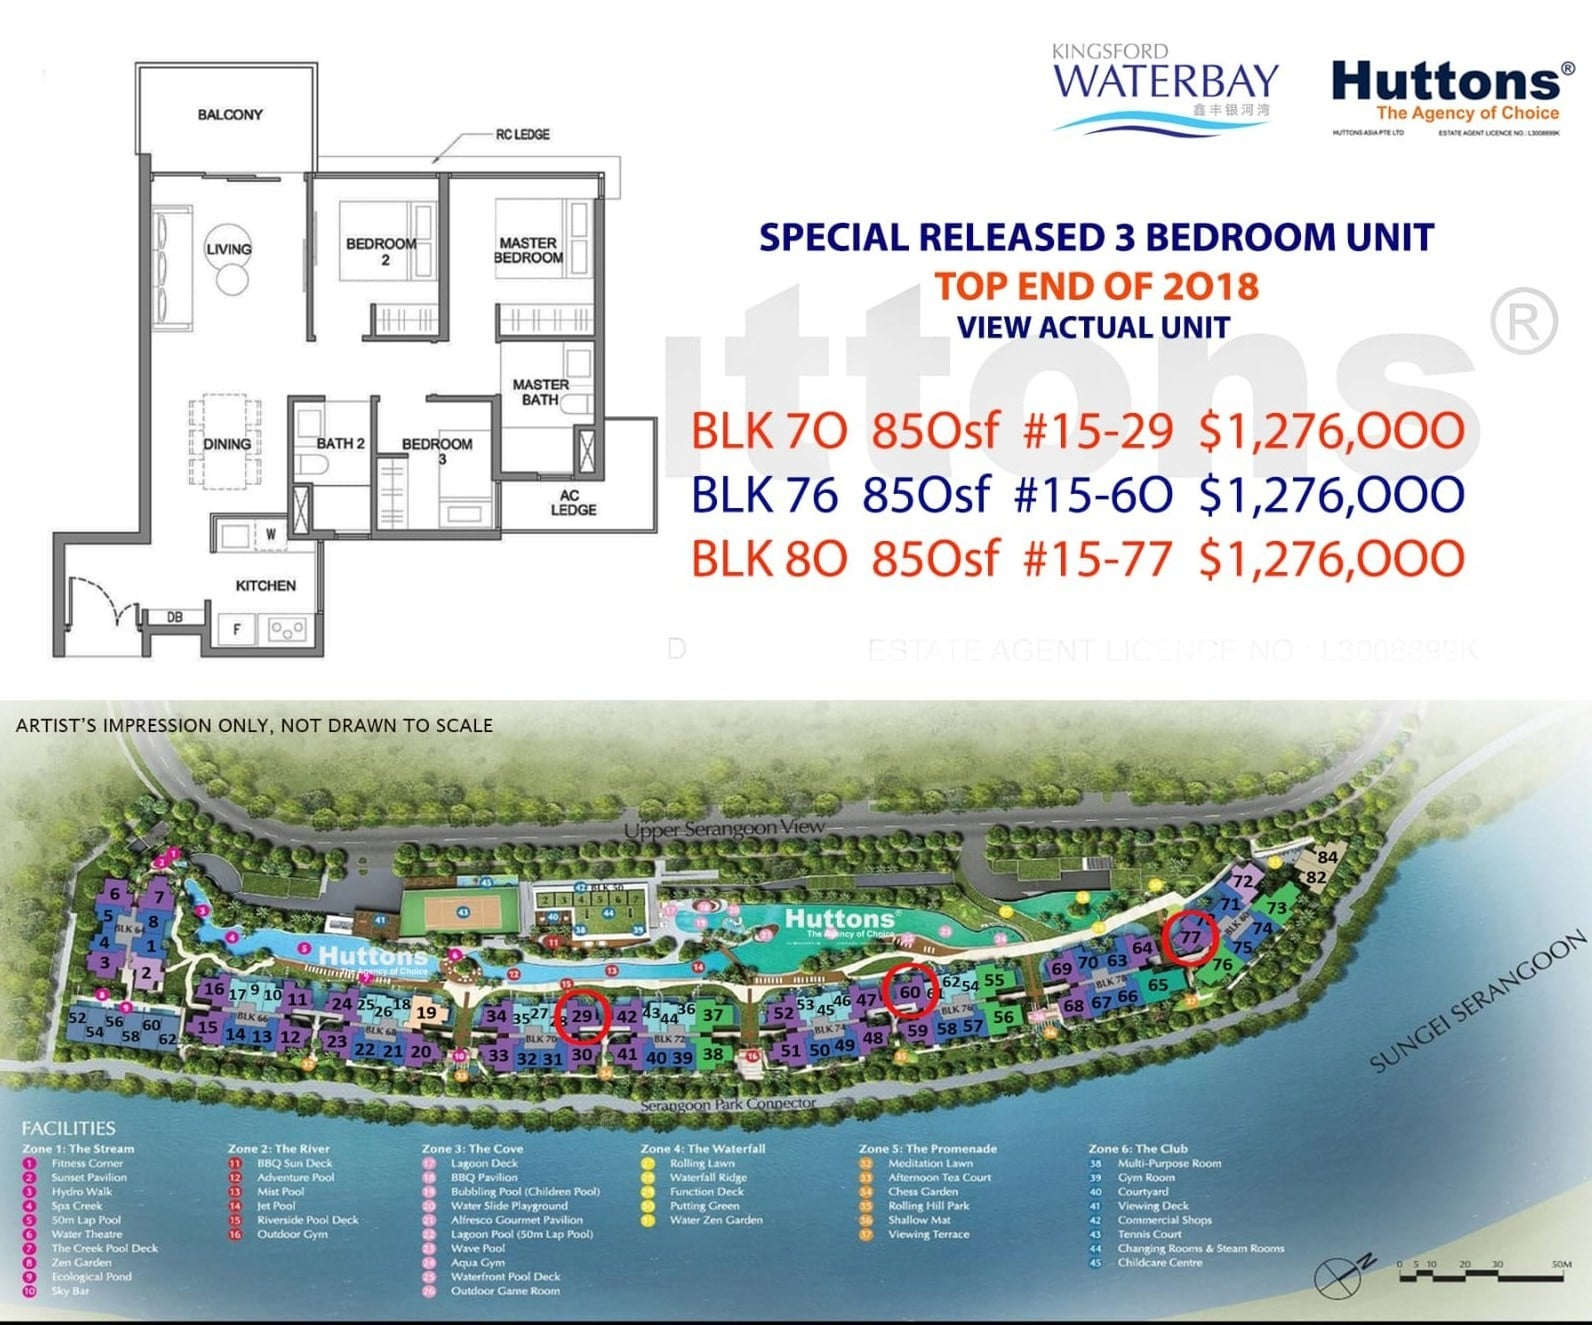 Kingsford Waterbay for sale